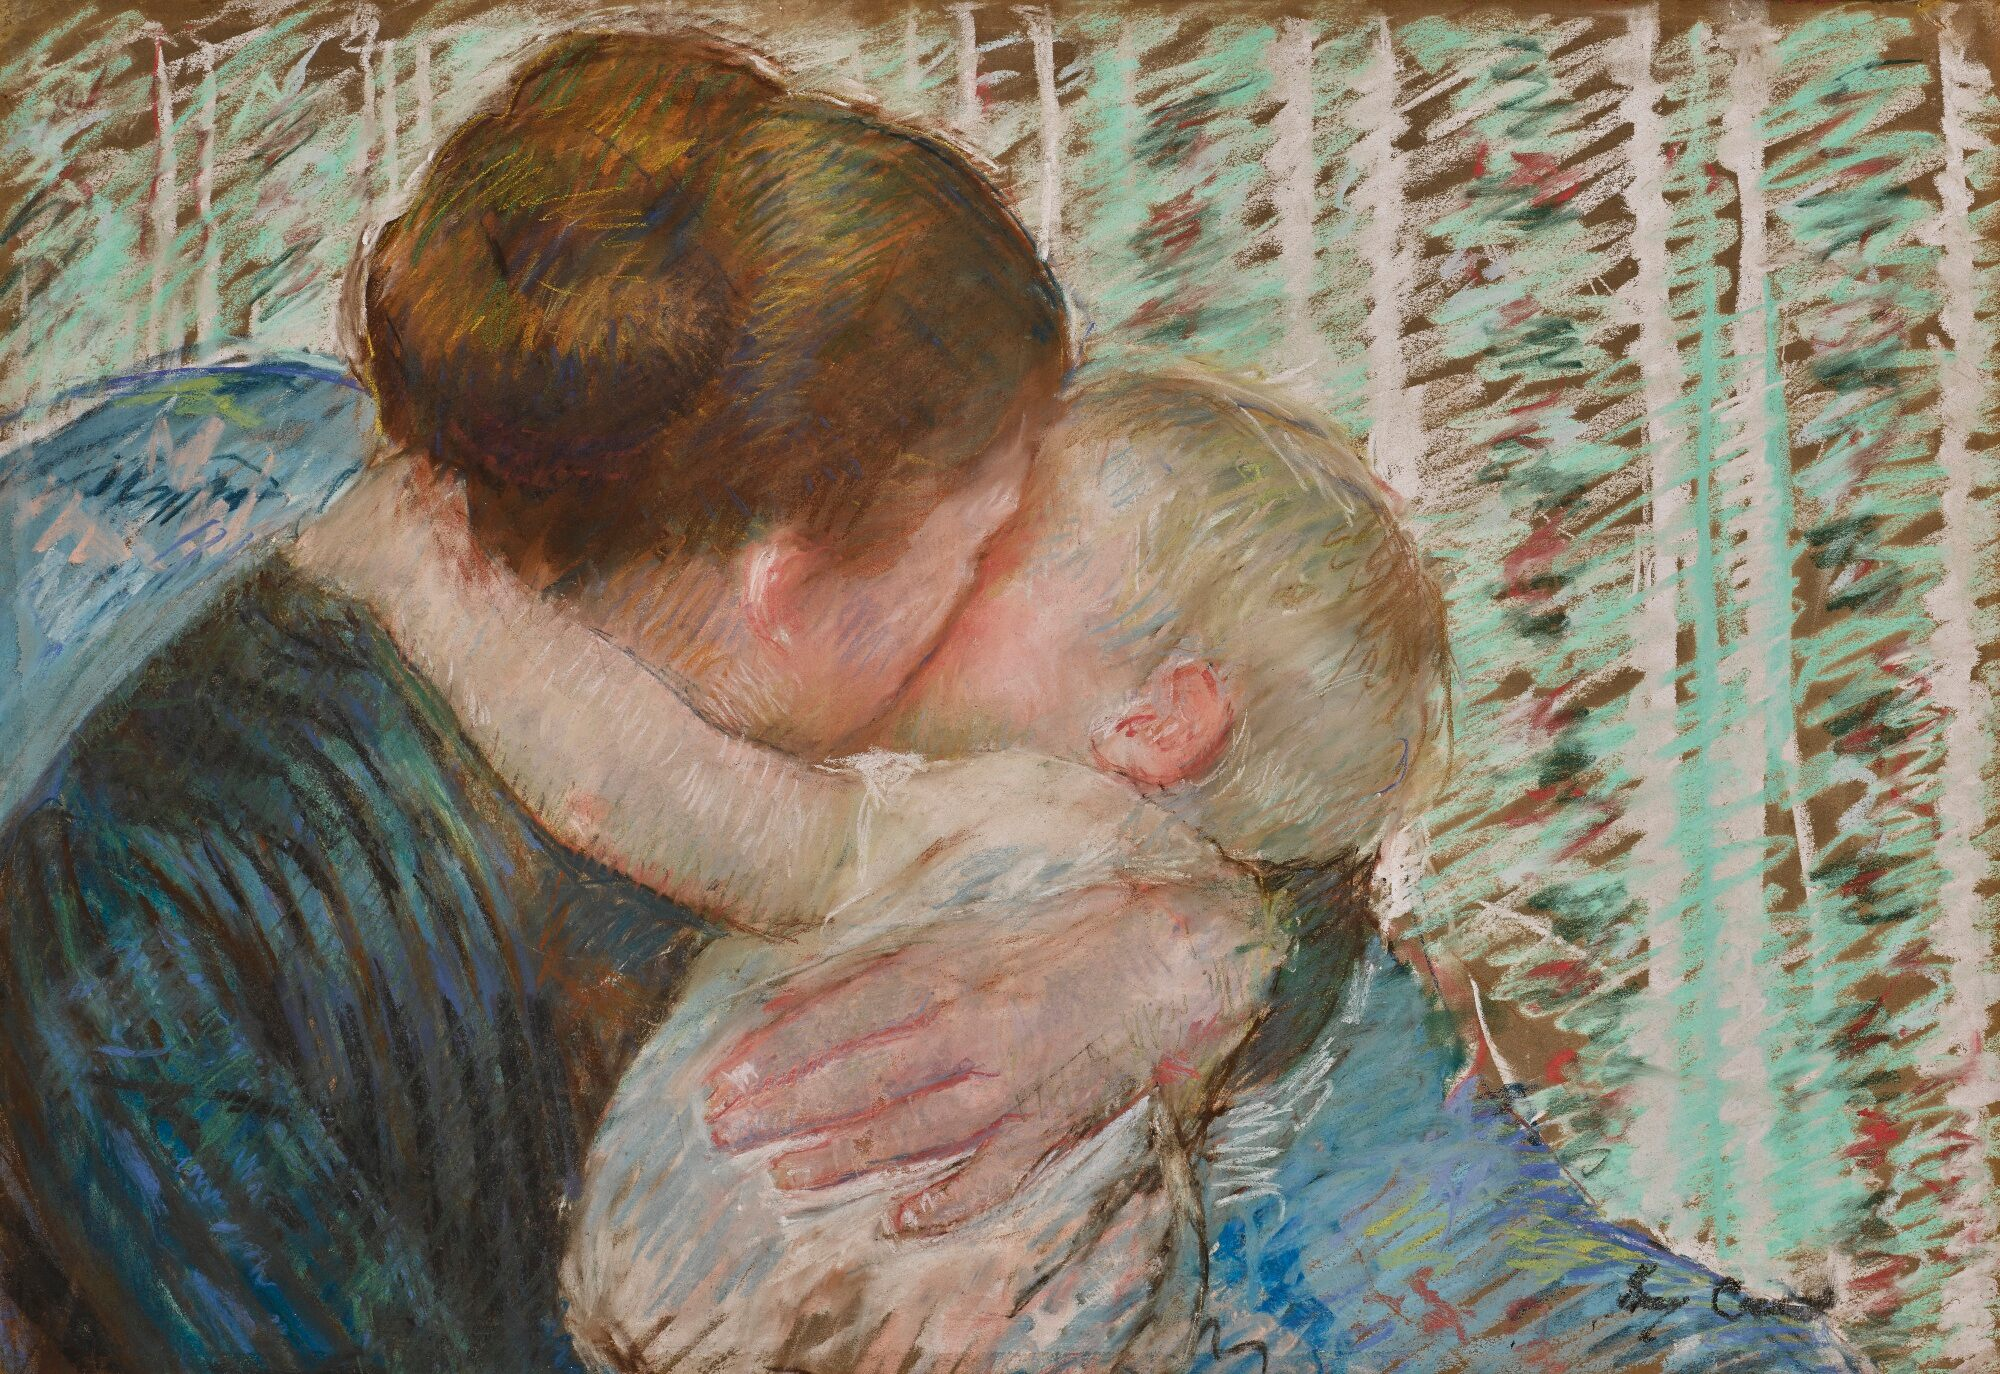 http://upload.wikimedia.org/wikipedia/commons/6/68/Mary_Cassatt_-_Mother_and_Child_%28The_Goodnight_Hug%29.jpg